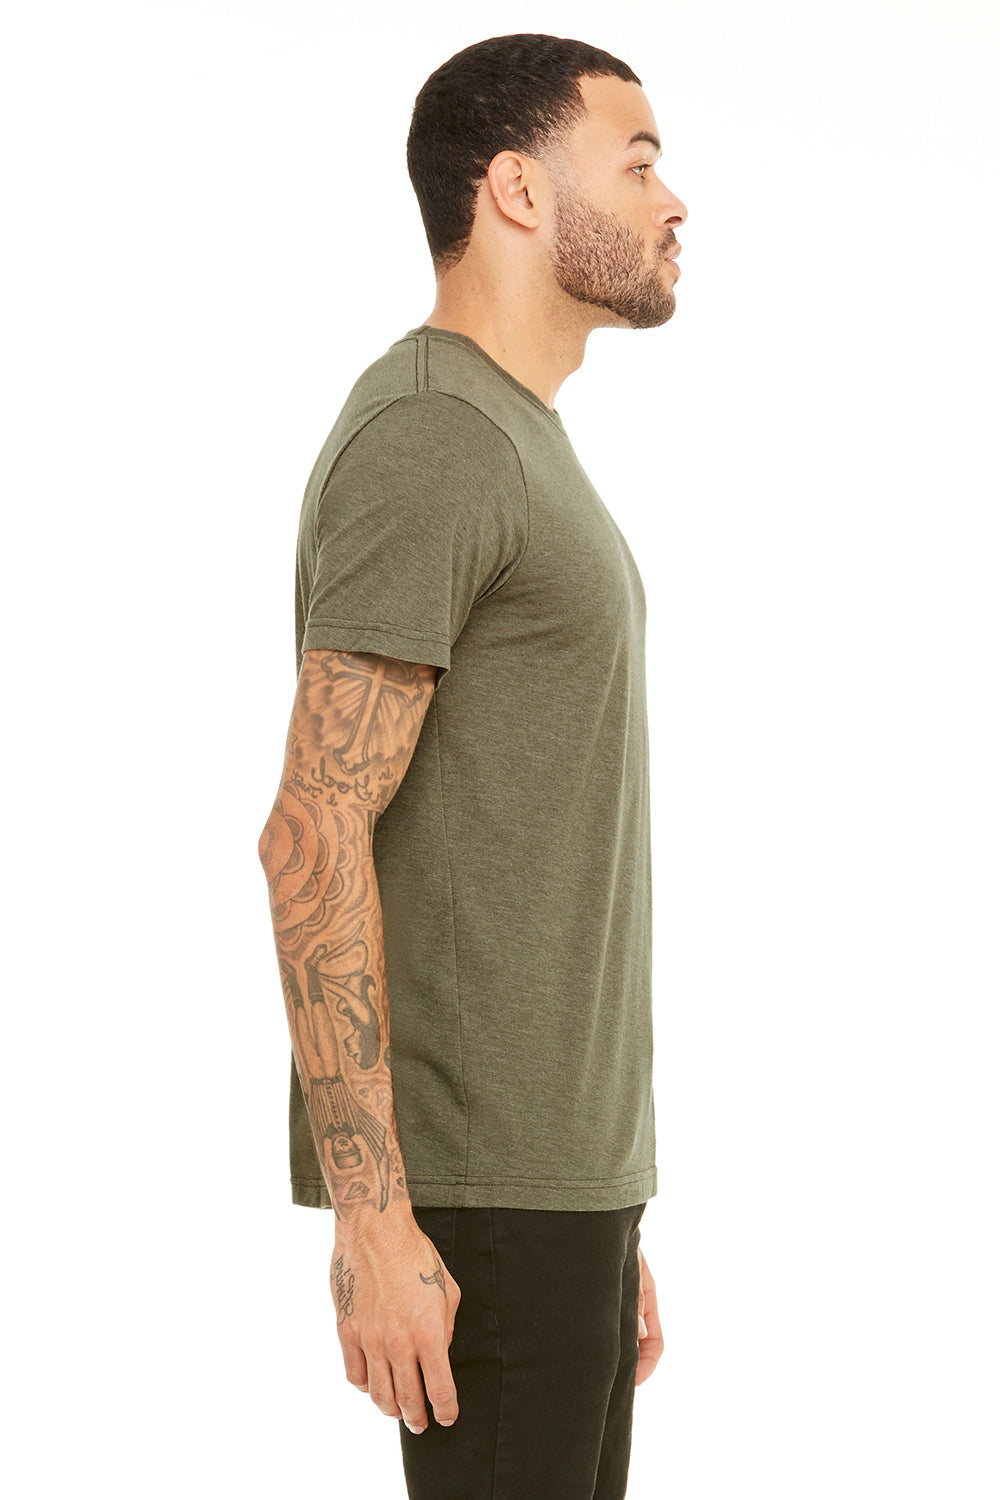 Bella + Canvas 3001C Mens Jersey Short Sleeve Crewneck T-Shirt Heather Olive Green Side